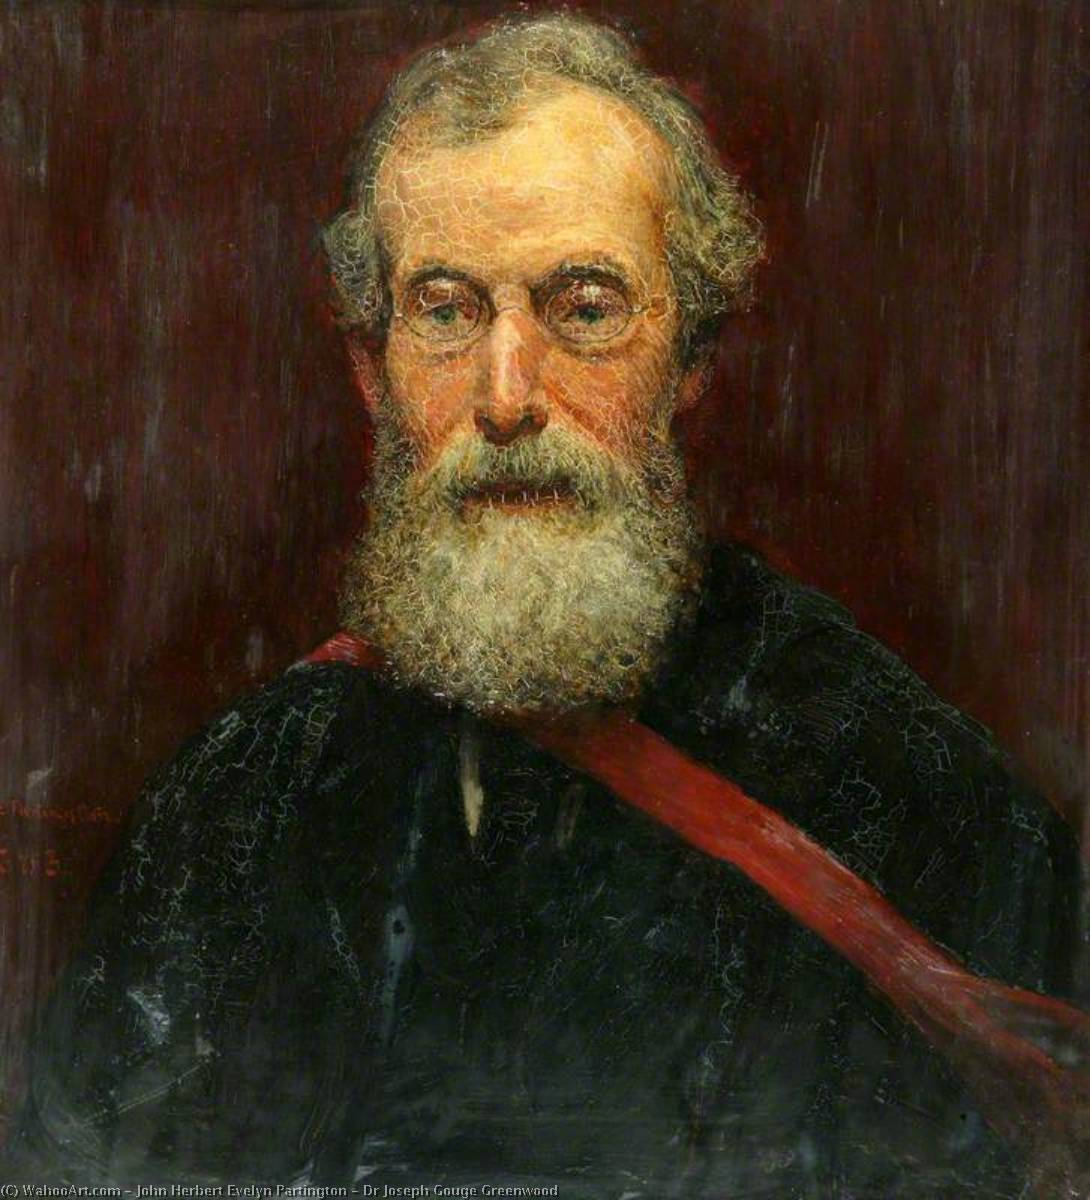 Dr Joseph Gouge Greenwood, 1883 by John Herbert Evelyn Partington | Museum Quality Reproductions | WahooArt.com